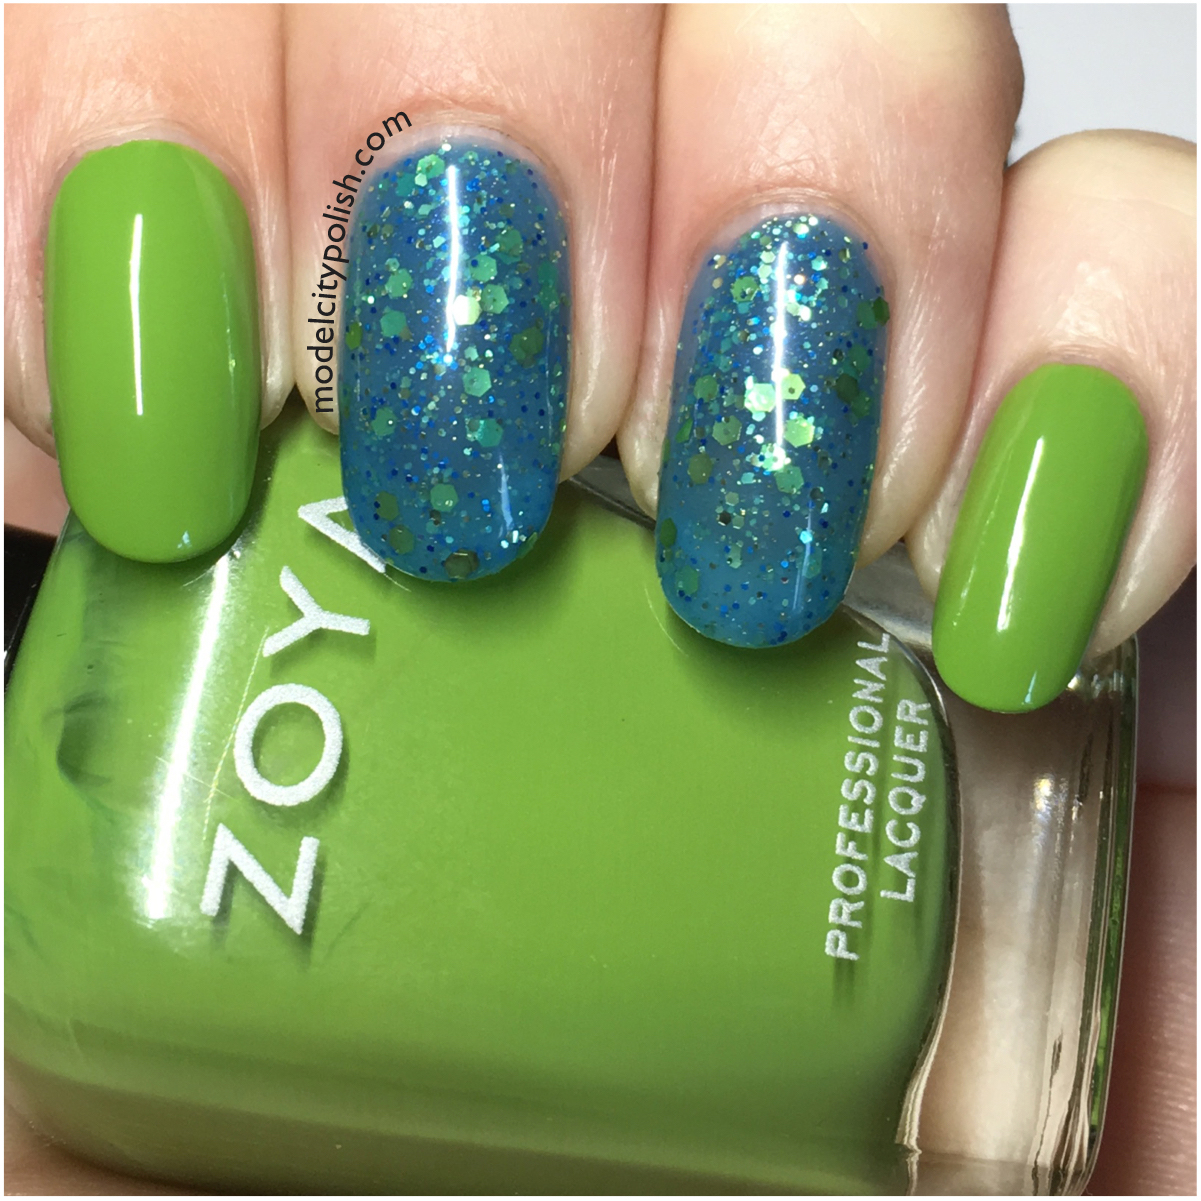 SuperChic & Zoya 5